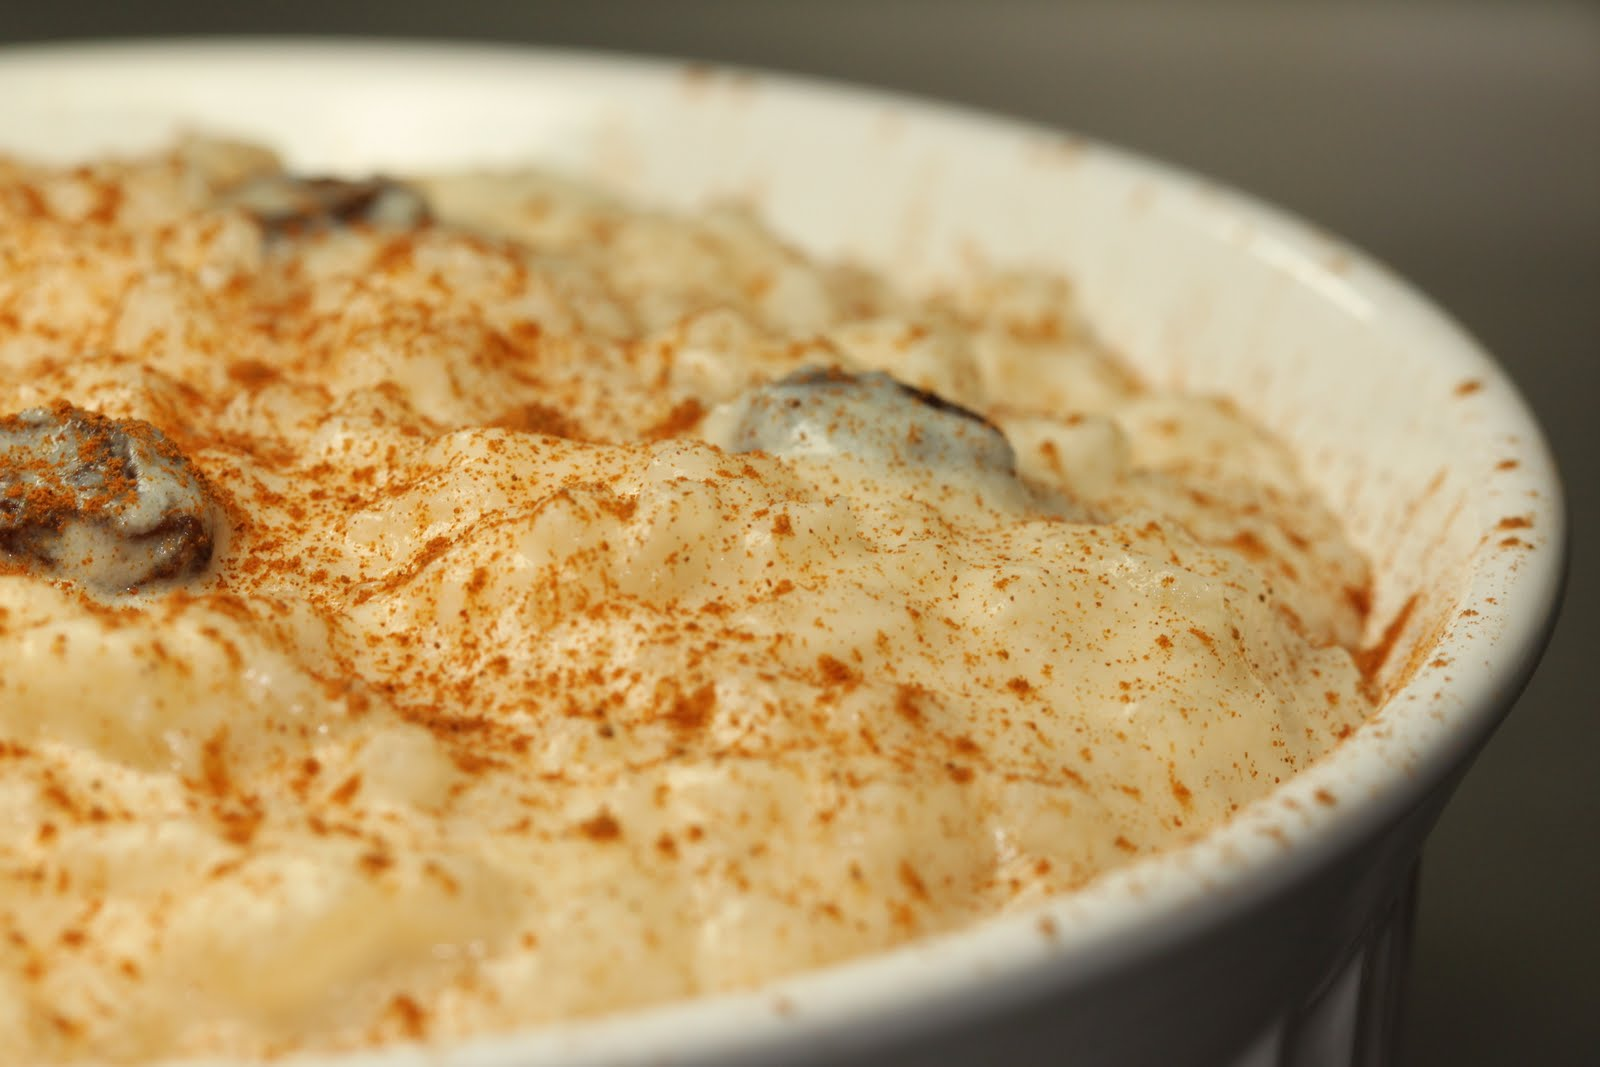 Baking is my Zen: FDNY Fireman's Rice Pudding